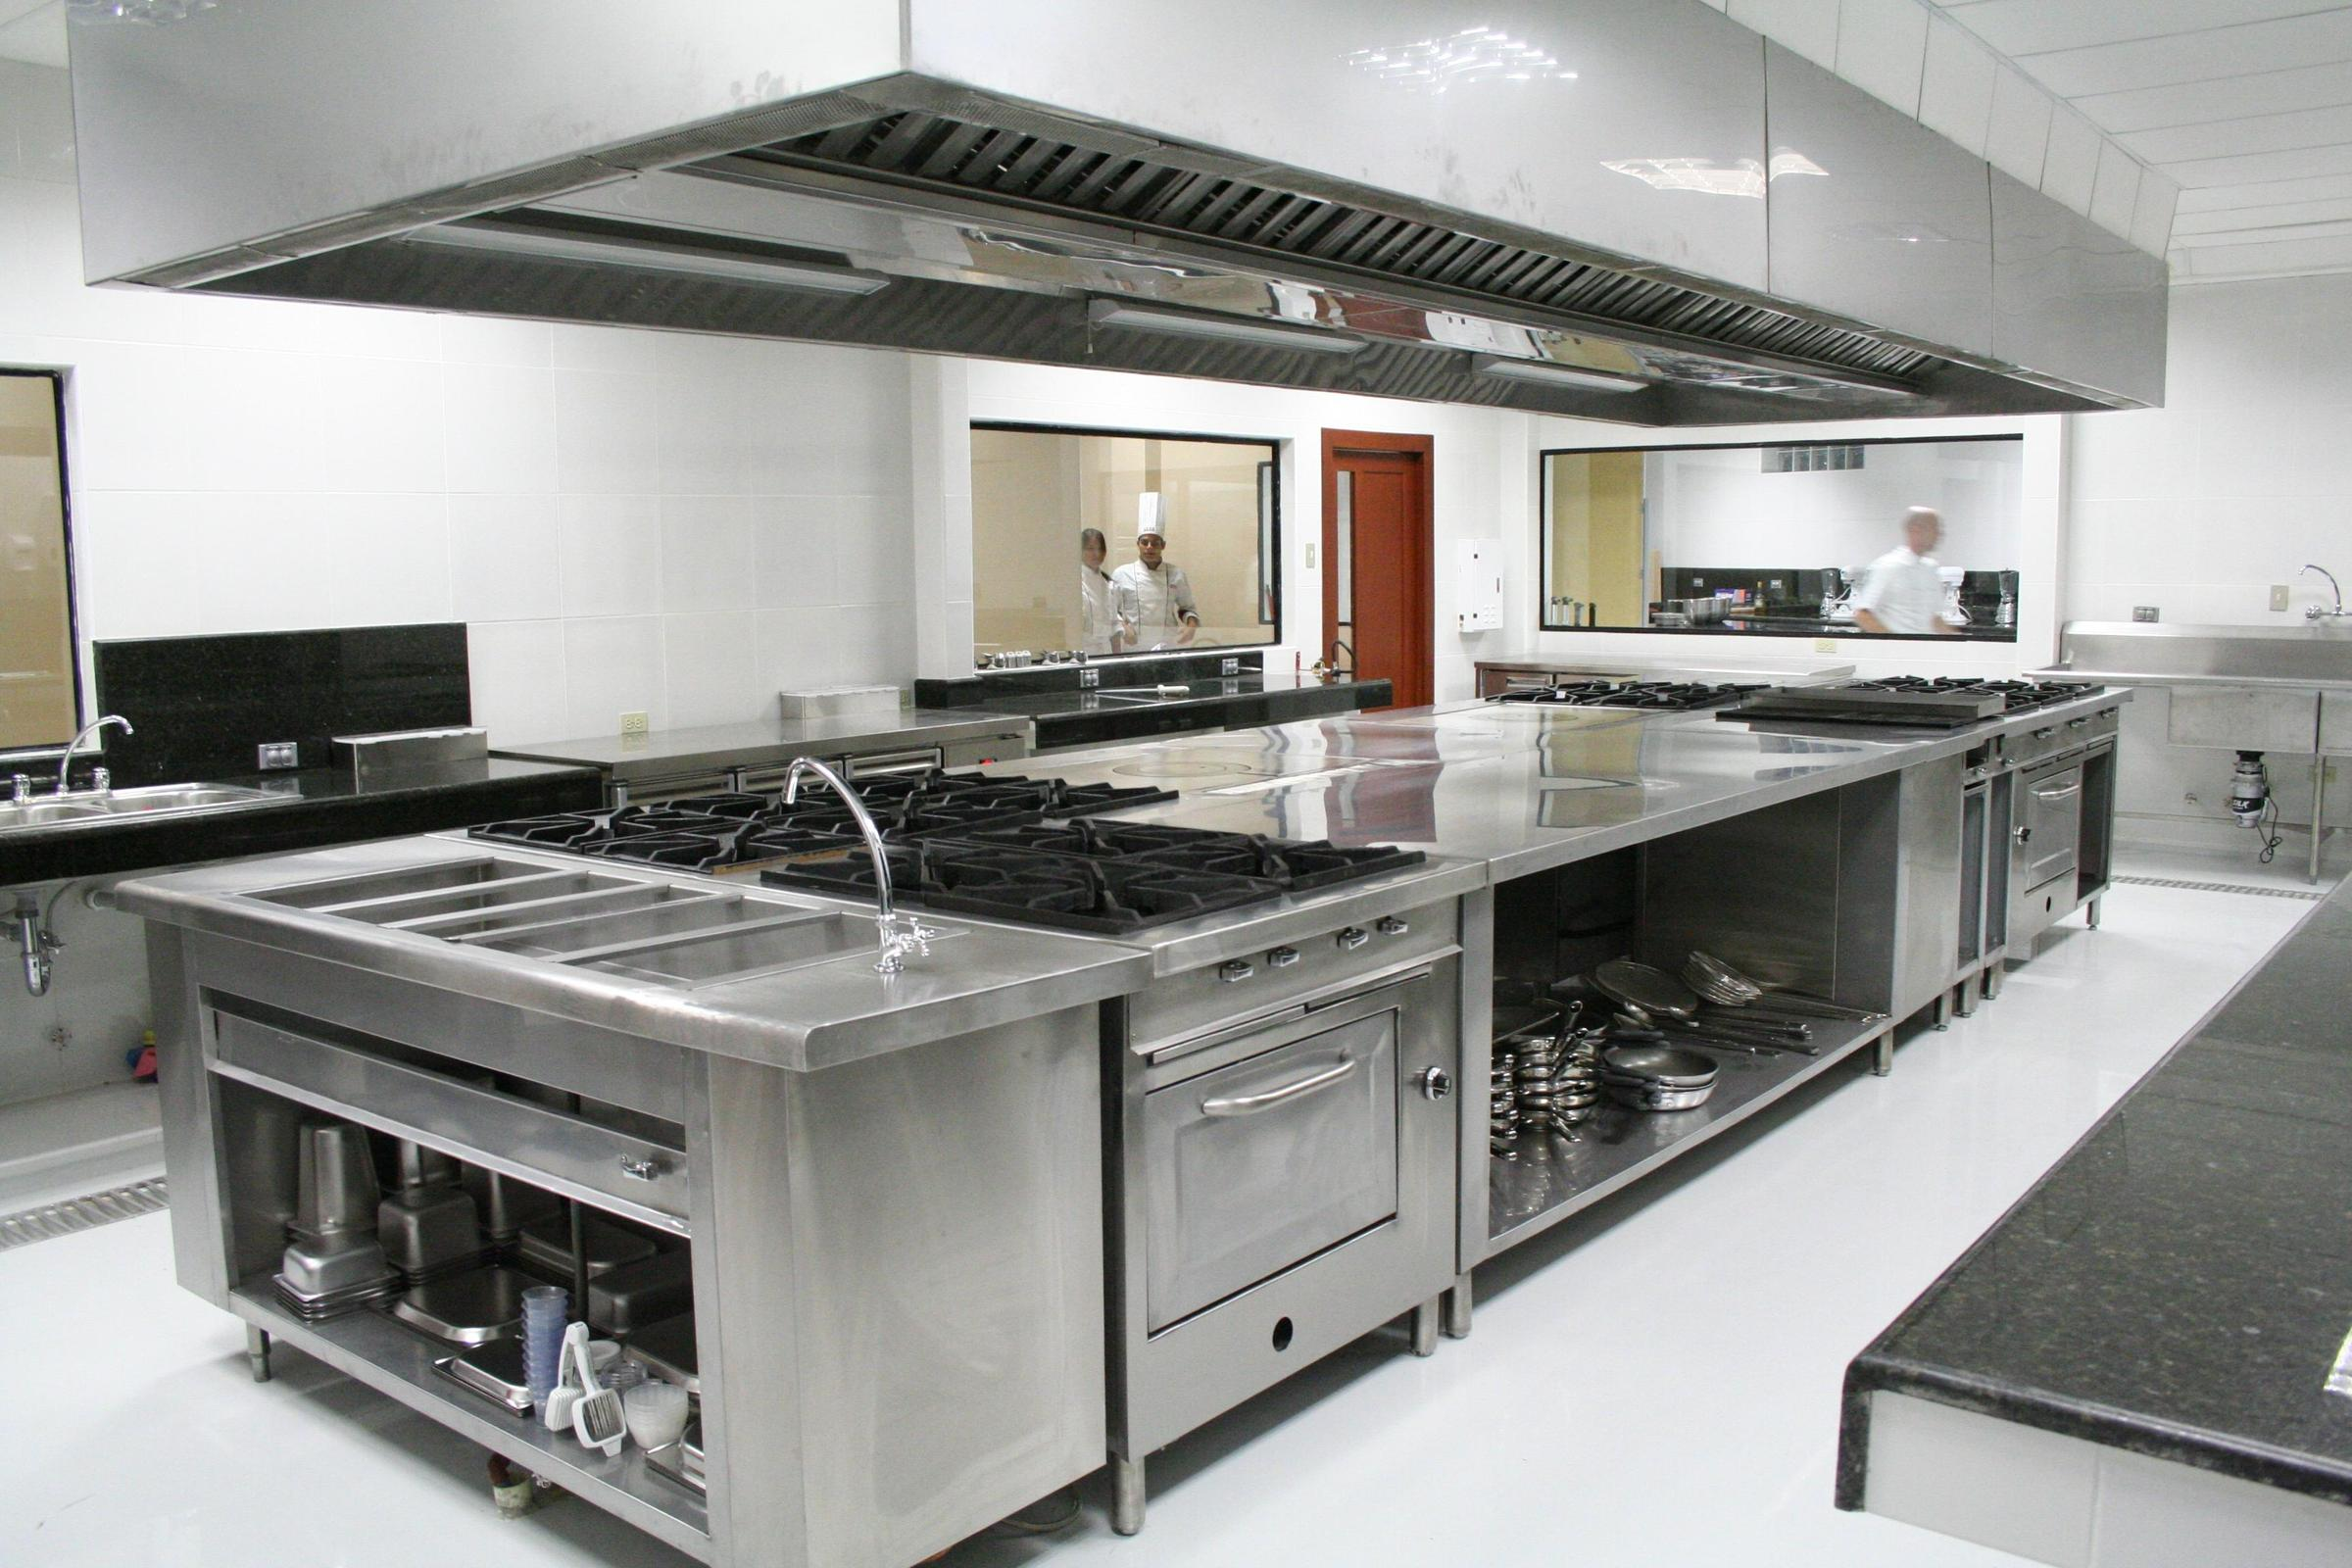 Grant Funded Commercial Kitchen To Cook Up Small Business